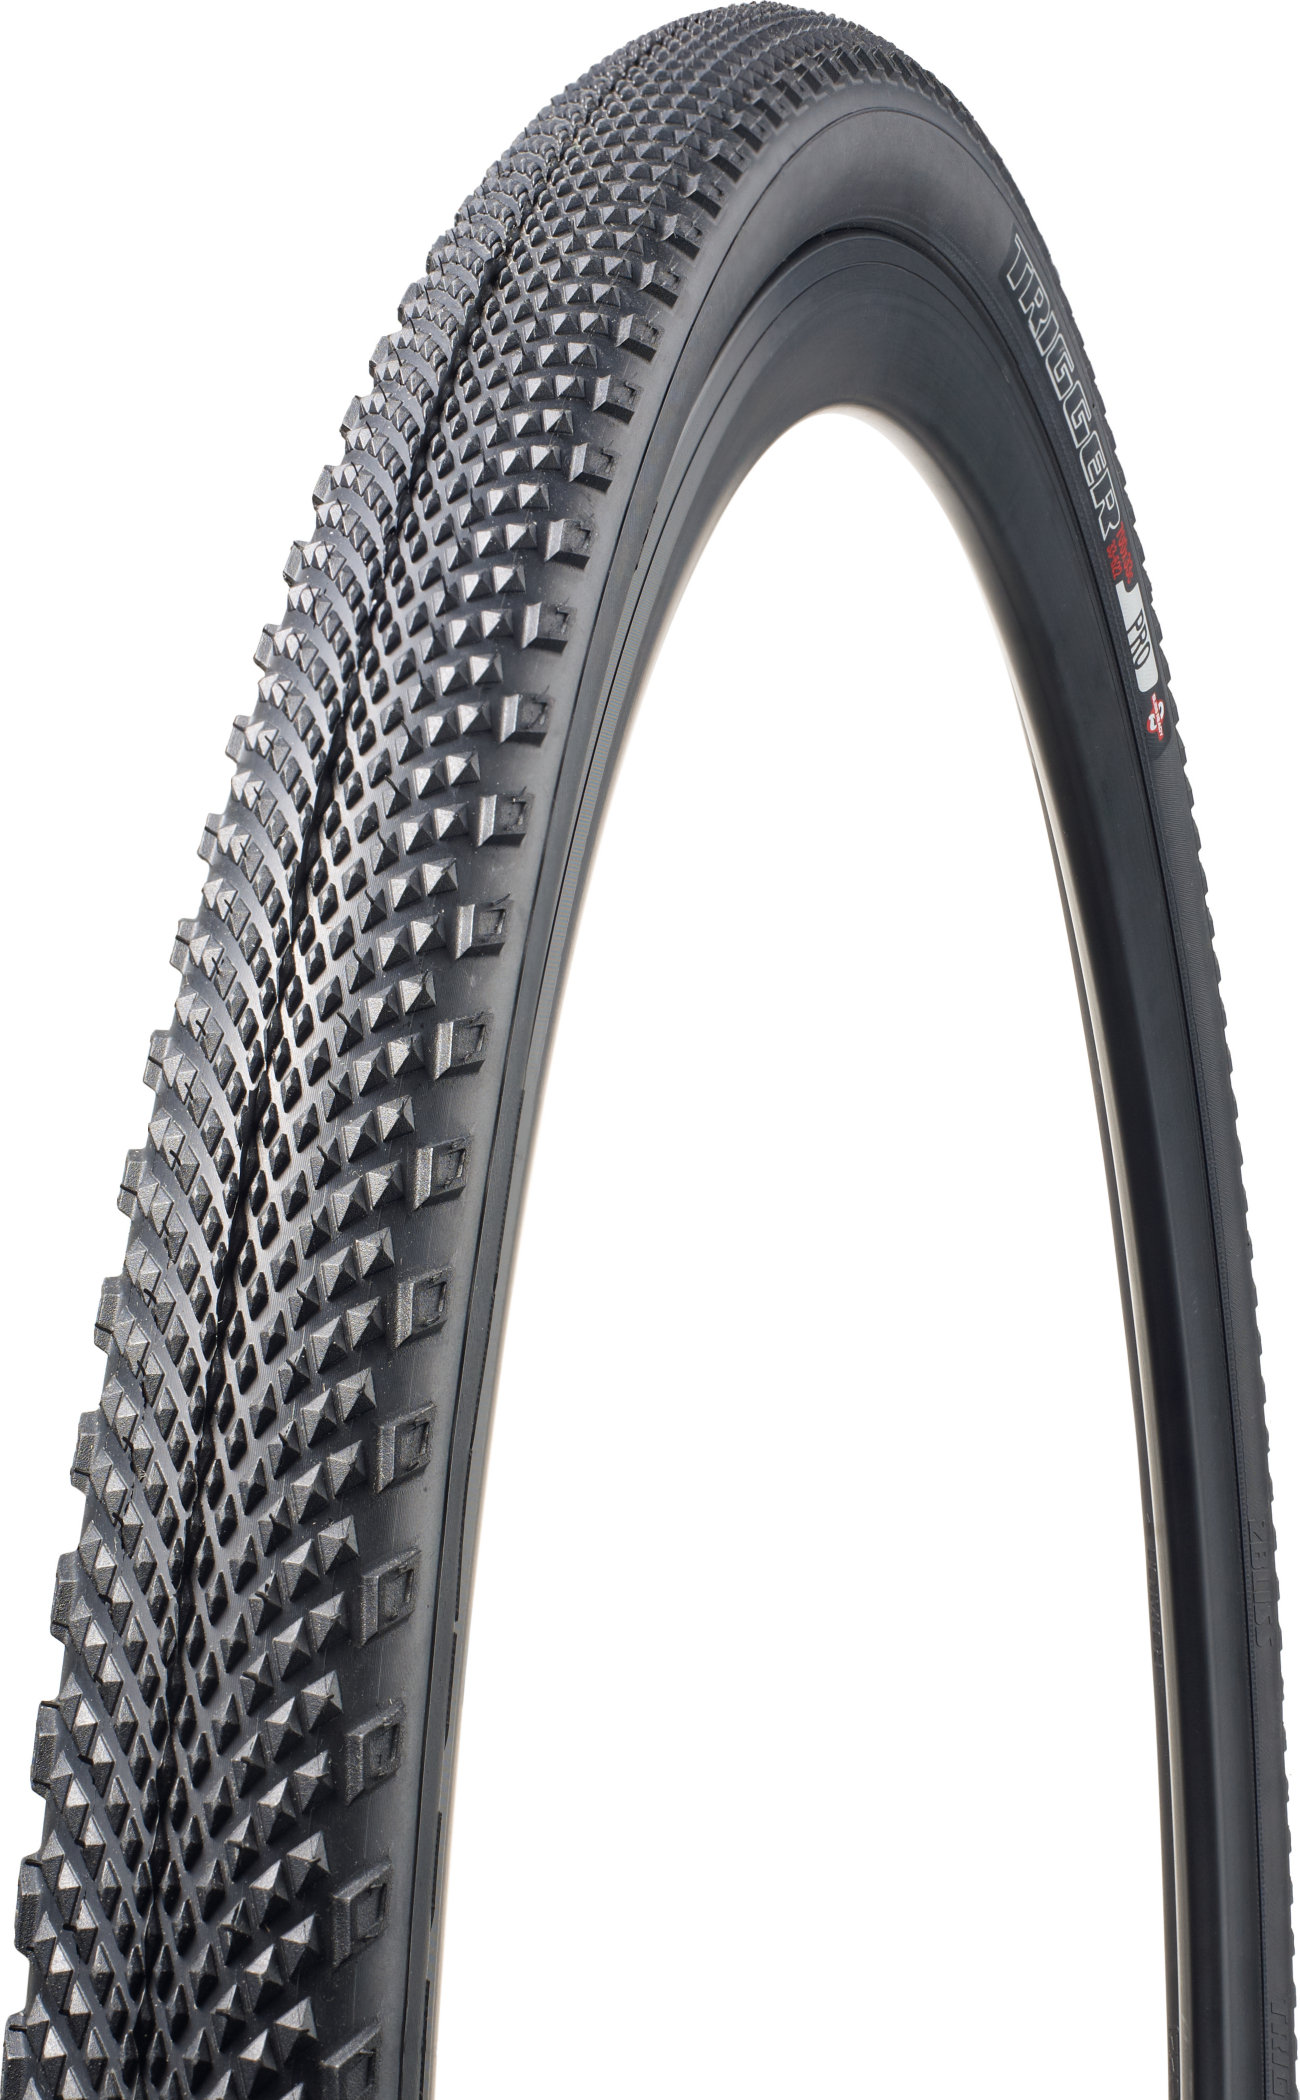 SPECIALIZED TRIGGER SPORT TIRE 700X38C - SPECIALIZED TRIGGER SPORT TIRE 700X38C